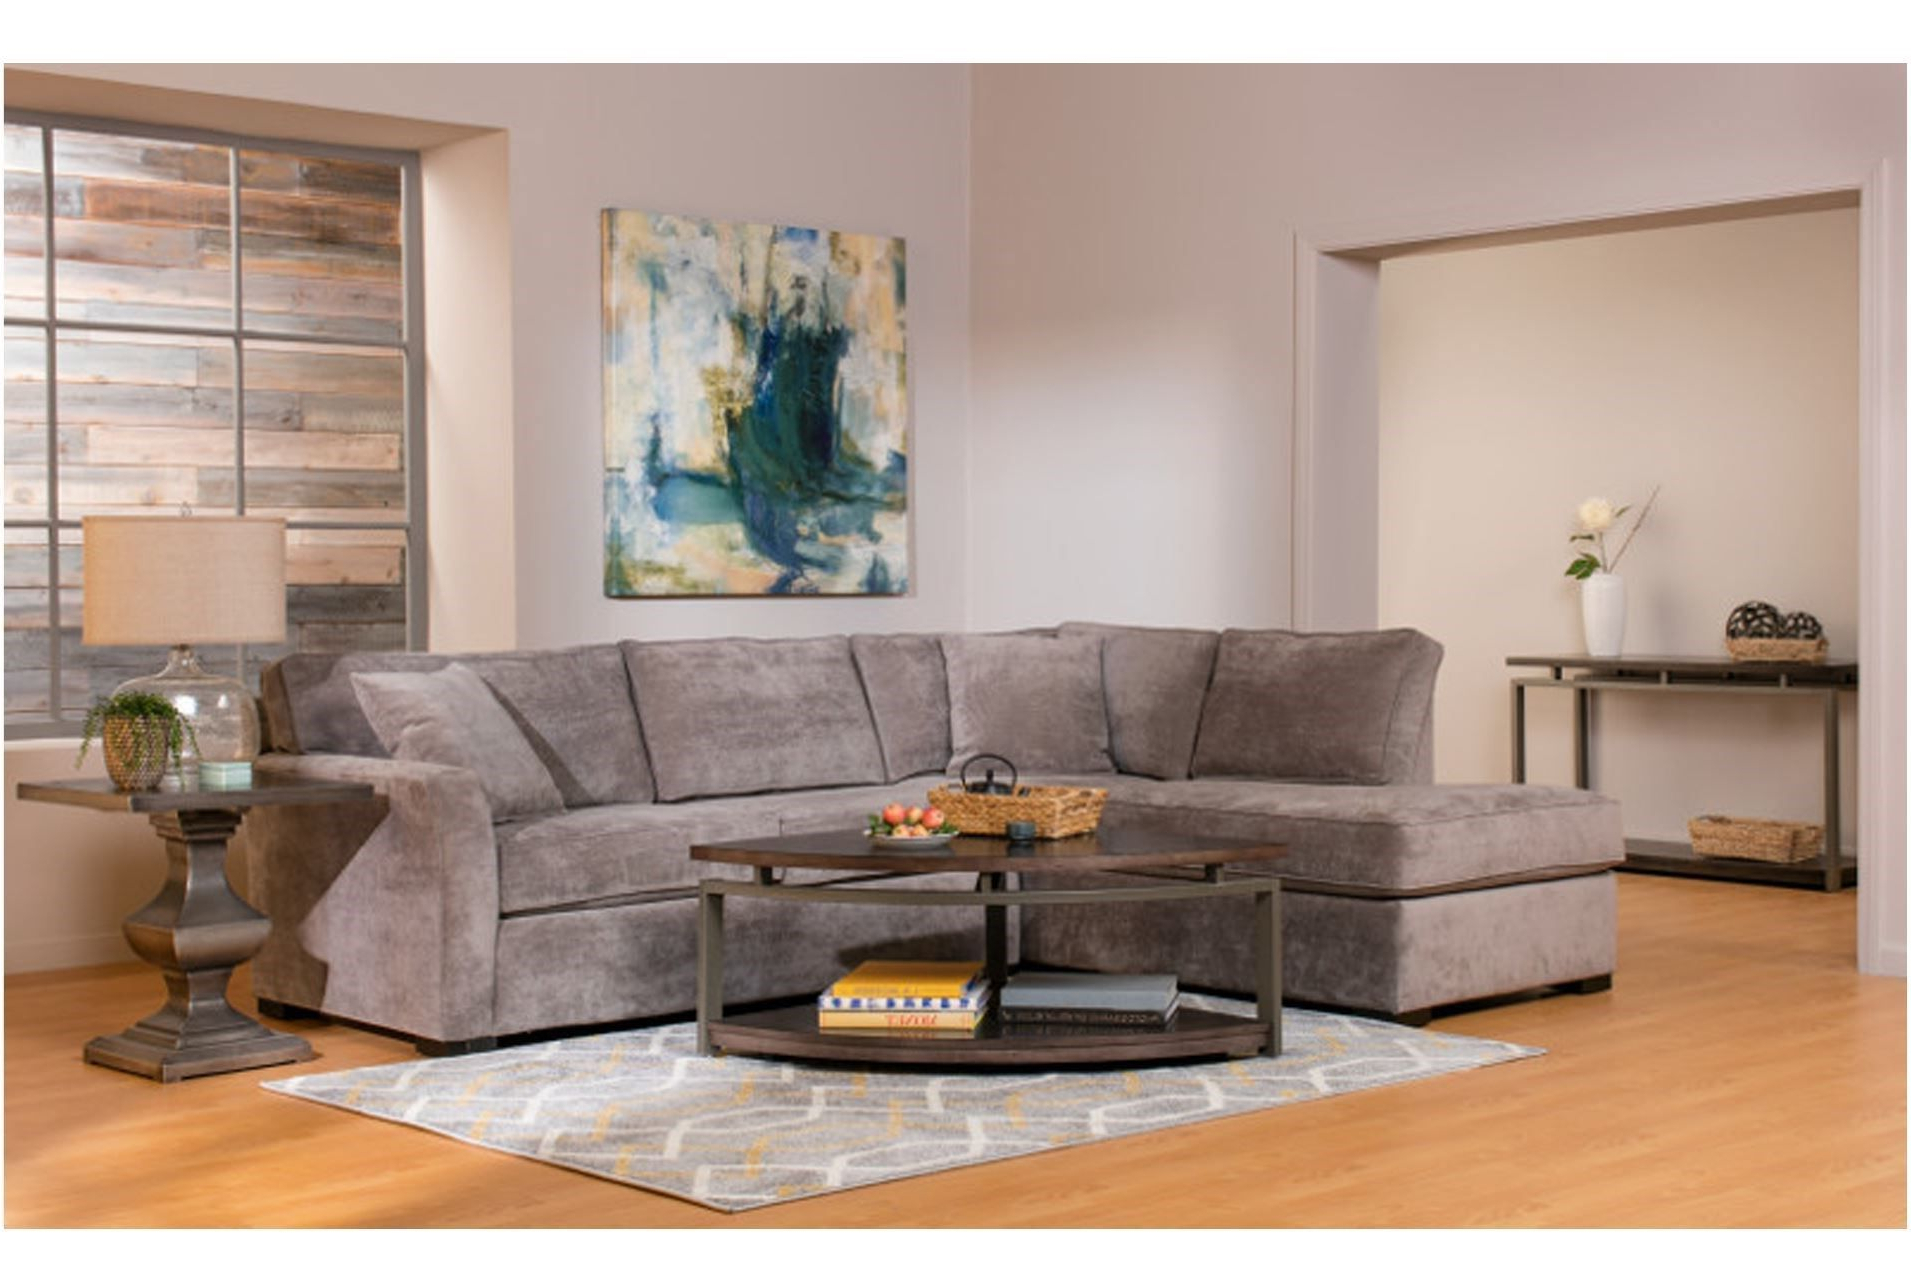 Most Popular Aspen 2 Piece Sleeper Sectionals With Raf Chaise In Aspen 2 Piece Sectional W/laf Chaise In  (View 15 of 20)